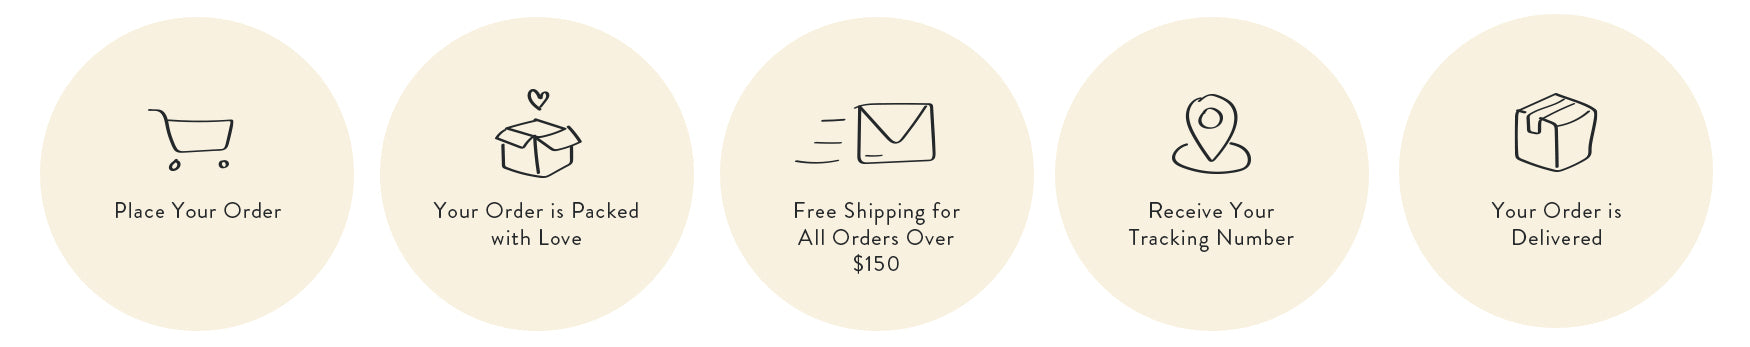 Spell Shipping Steps and Icons- place your order, your order is packed, free shipping for all orders over $150, receive your tracking number, your order is delivered